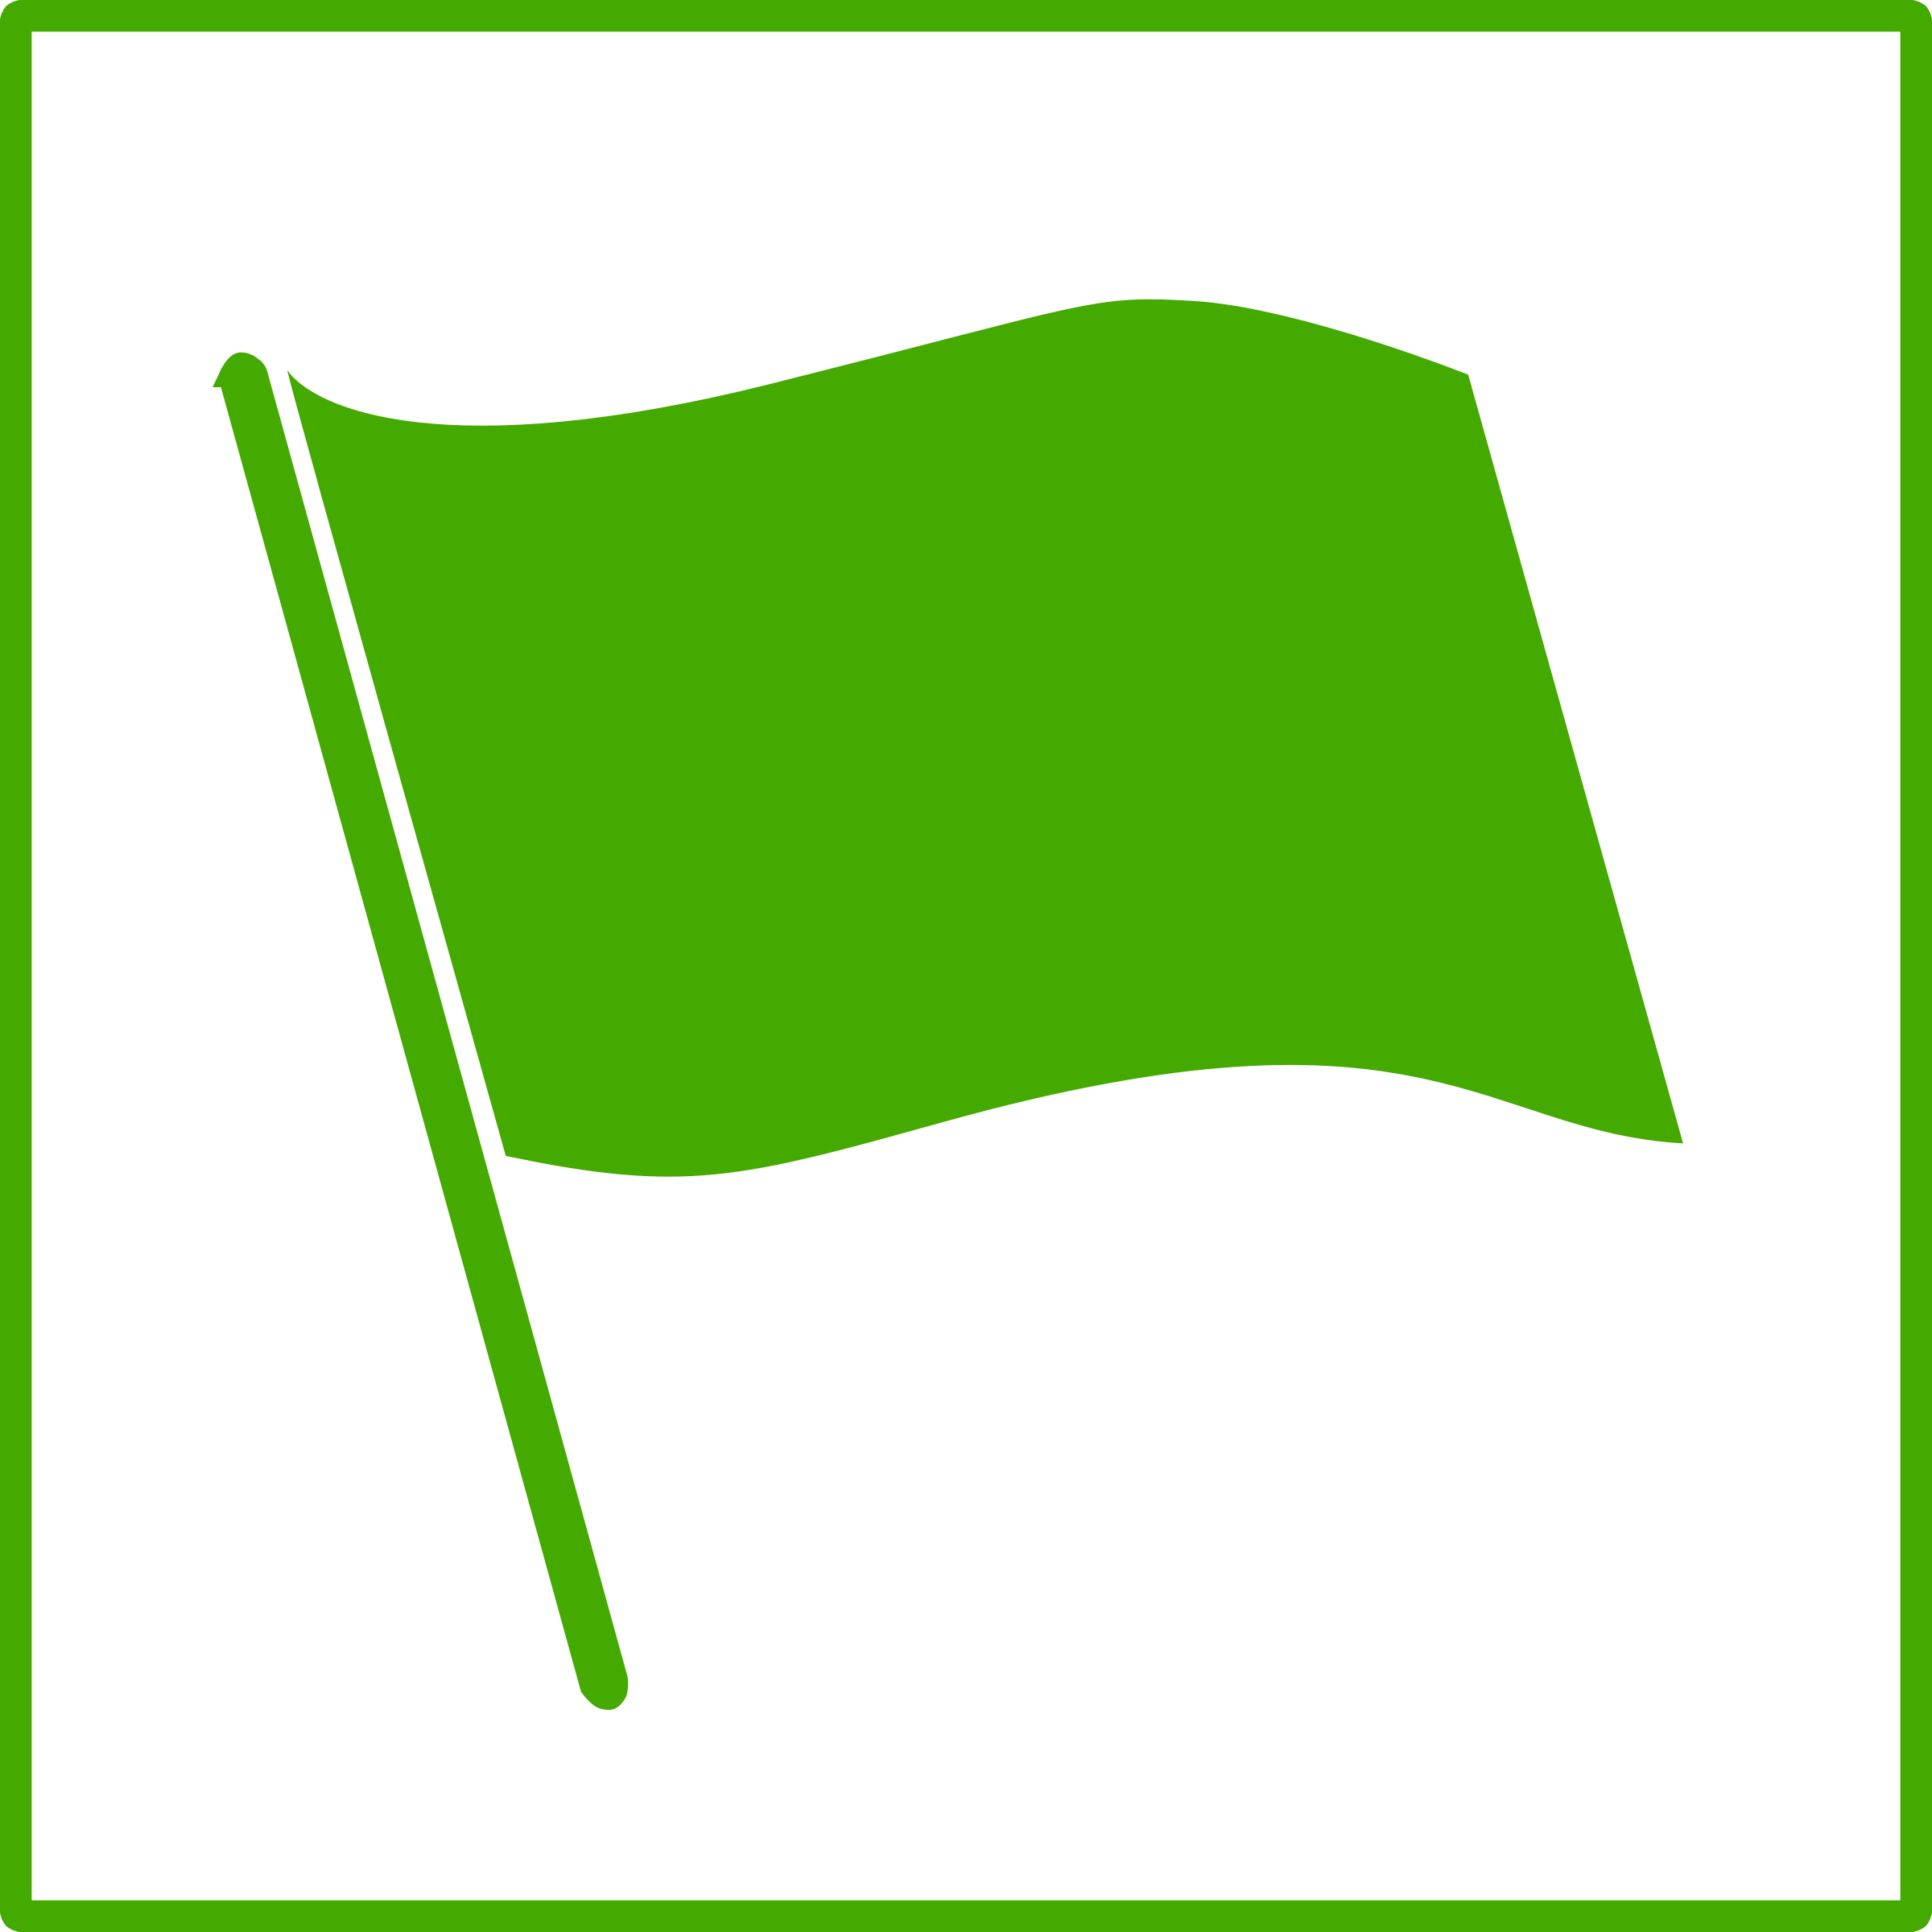 eco green flag icon by dominiquechappard